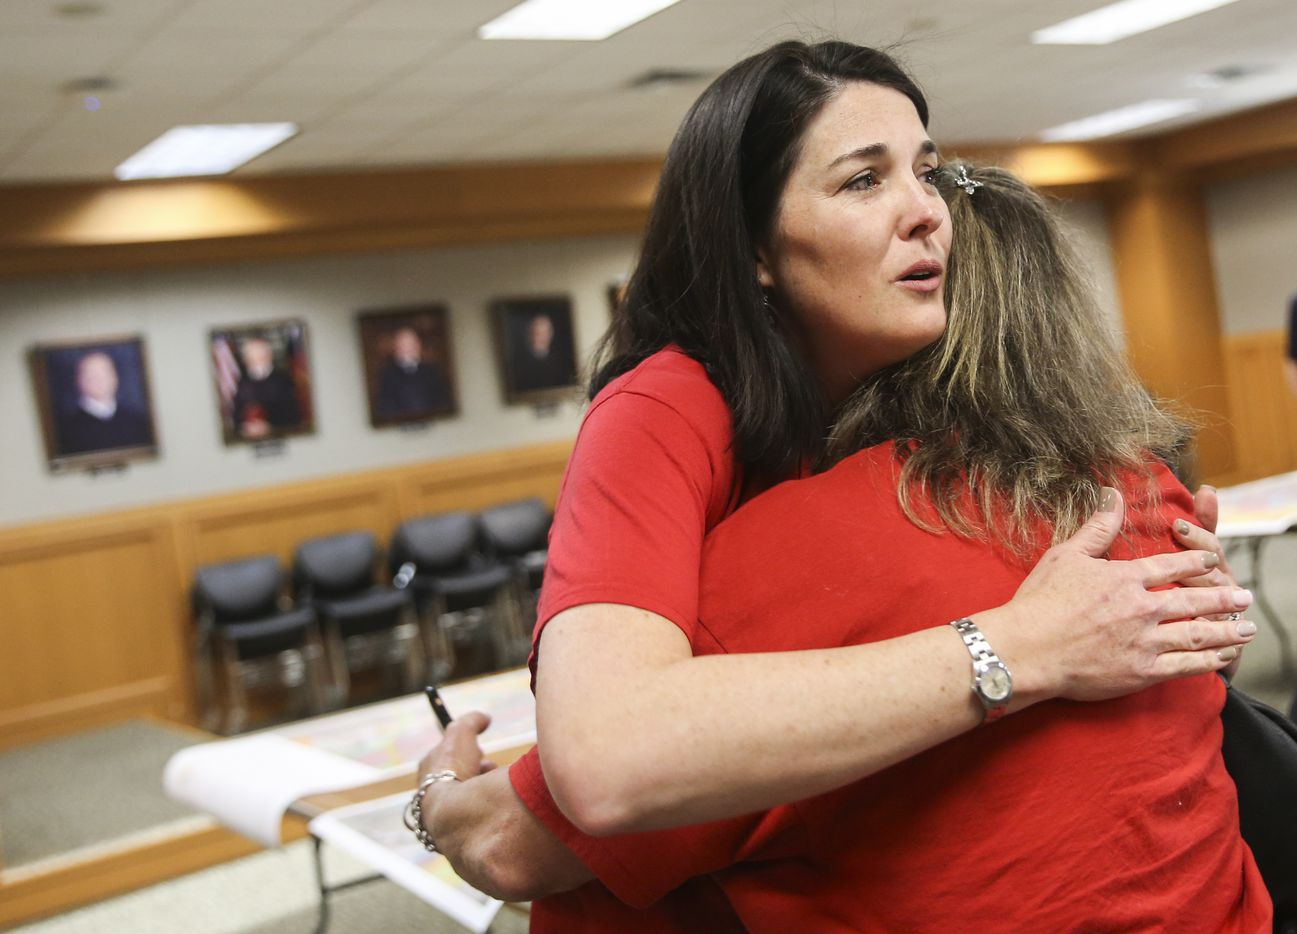 Tara Voigt, left, whose property will be affected by the new U.S. 380 alignment, embraces her friend, Lori Swim, who would be affected by one of the proposed bypass routes, during a Texas Department of Transportation open house to display new U.S. 380 alignment maps Thursday, March 21, 2019 at the Russell A. Steindam Courts Building in McKinney.